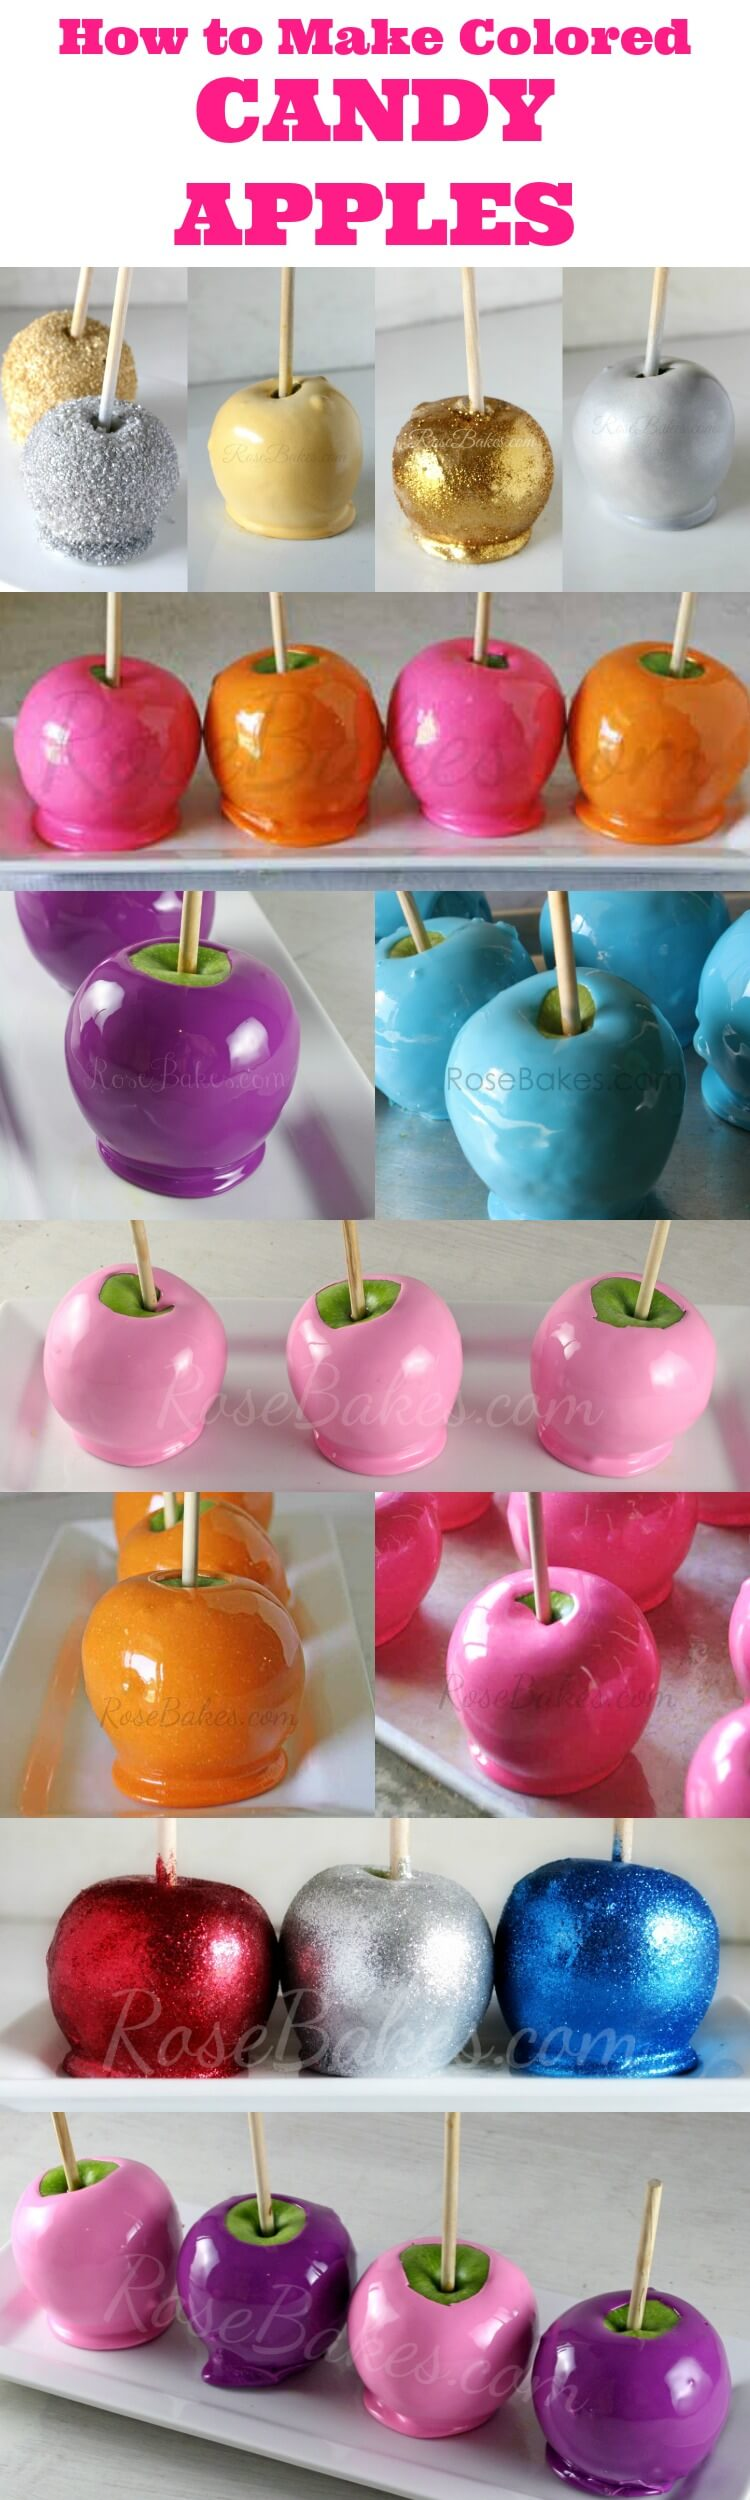 How to Make Colored Candy Apples from Rose Bakes